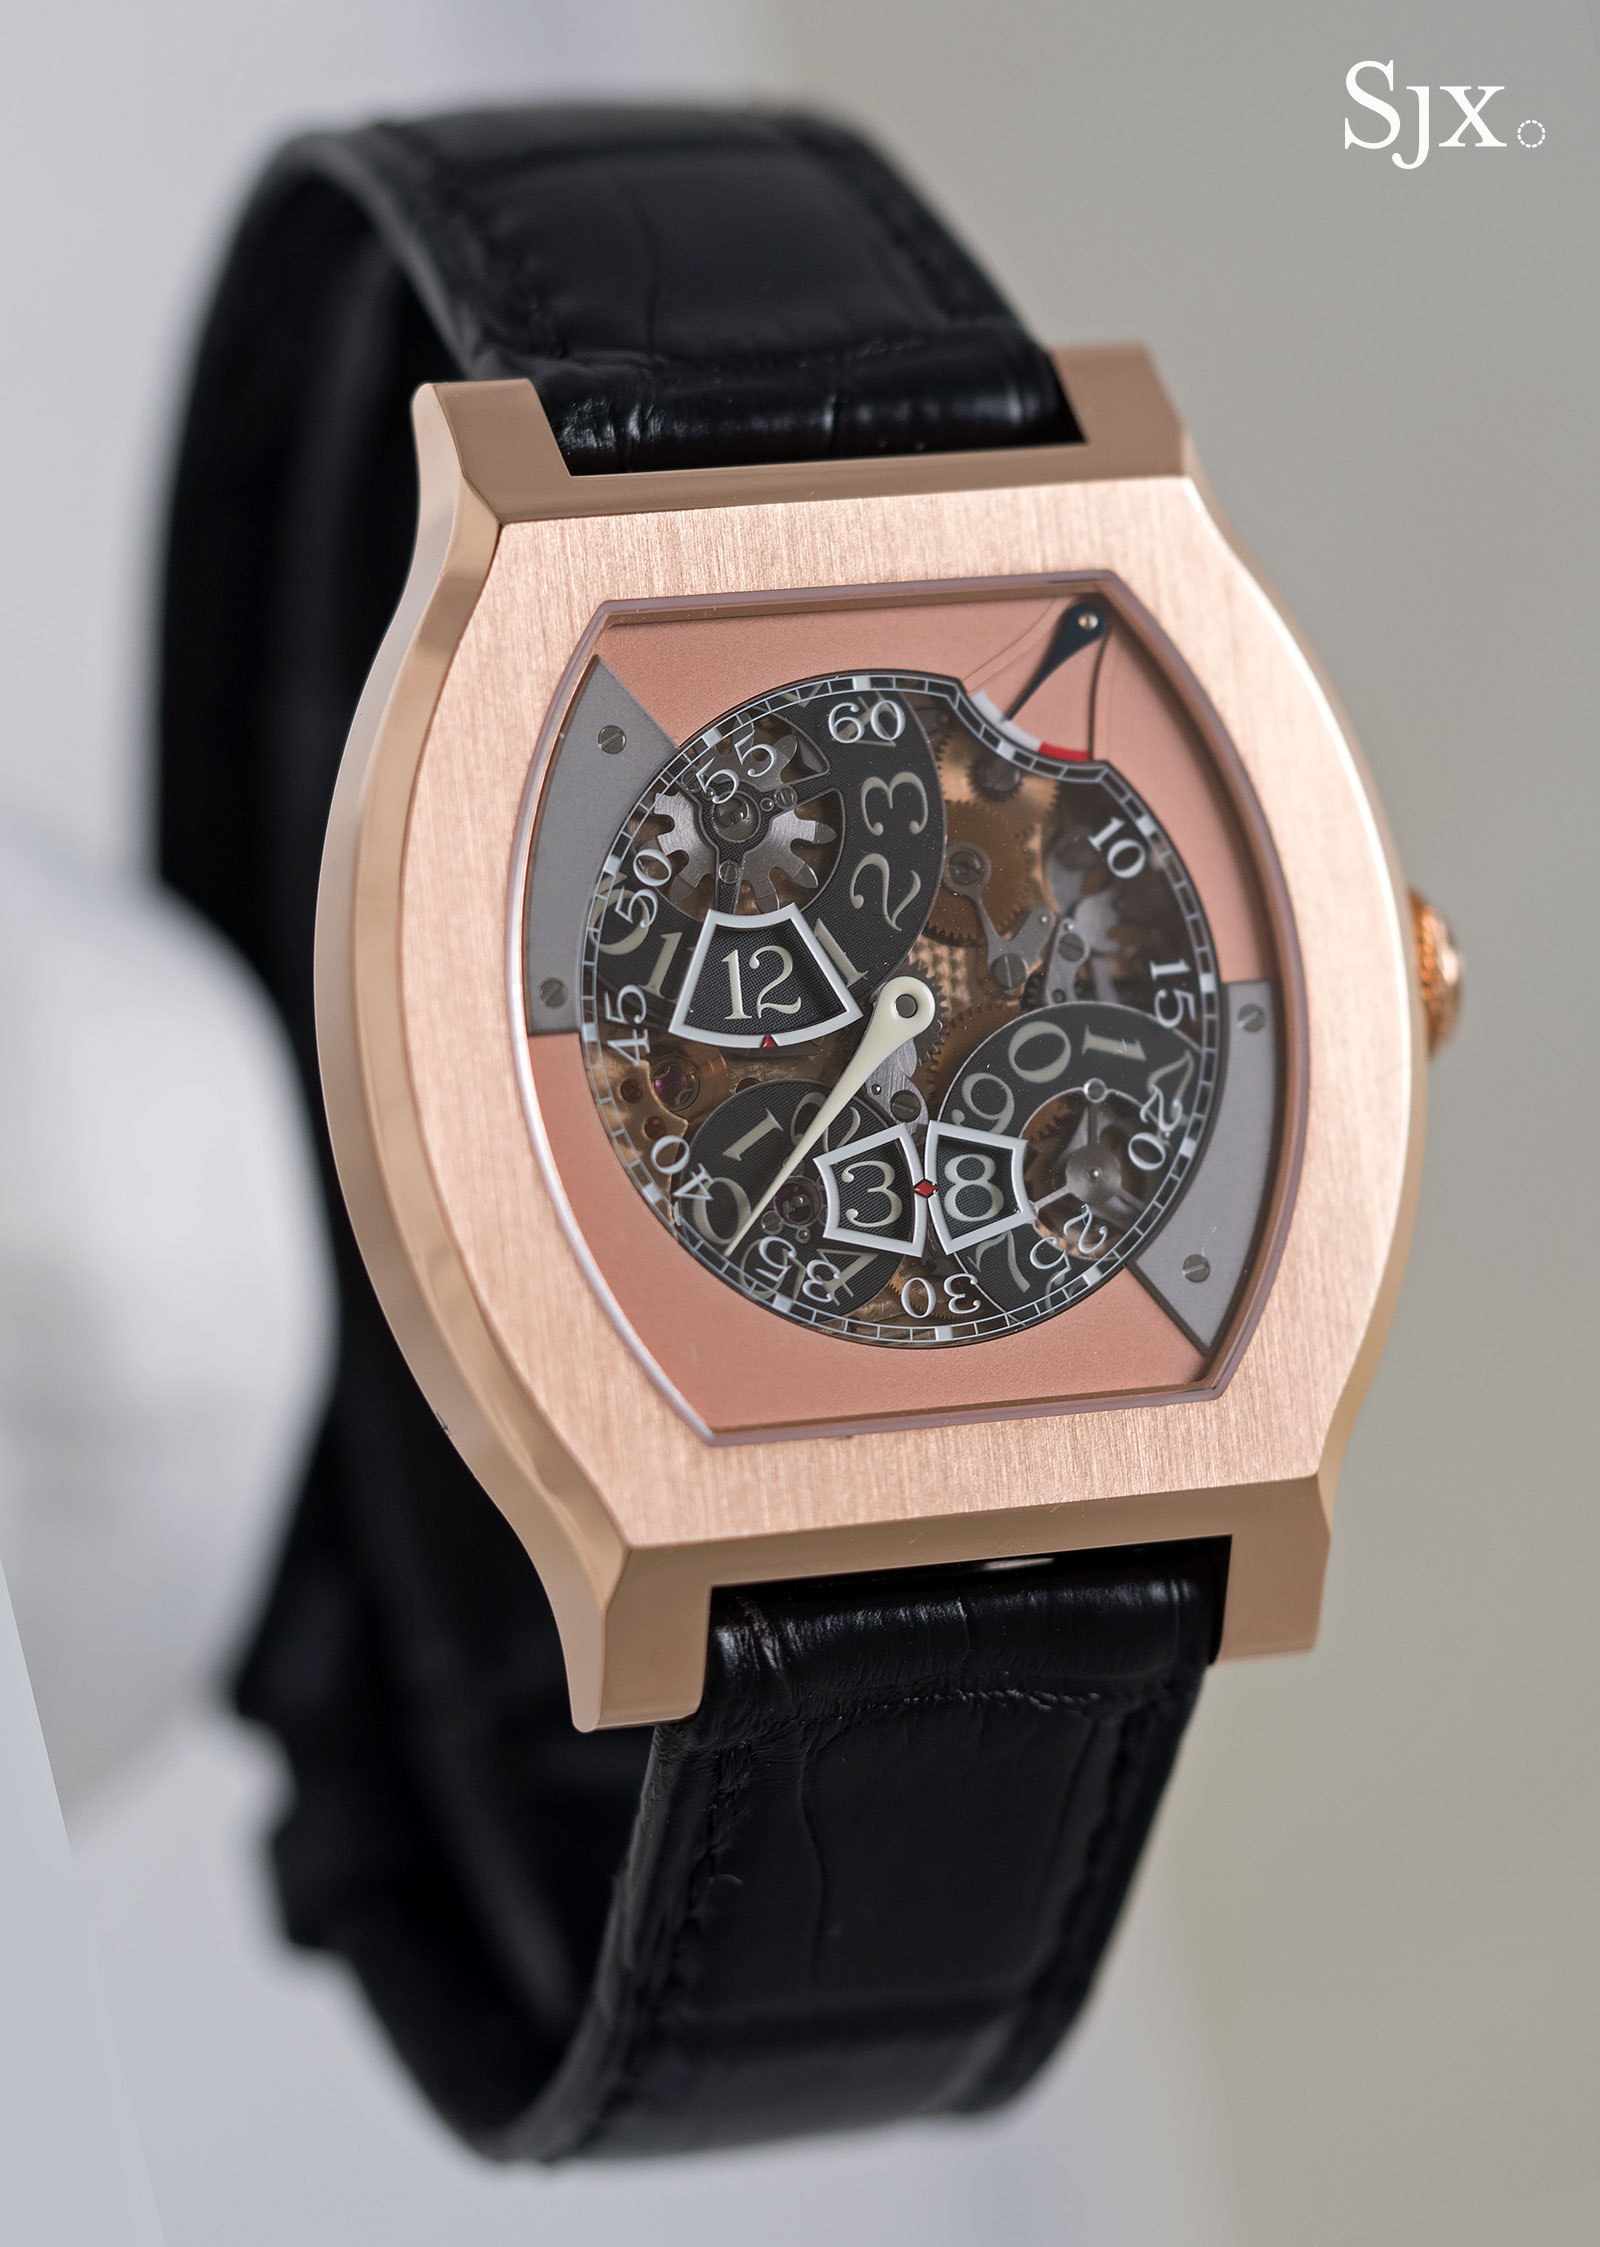 FP Journe Vagabondage III red gold 2